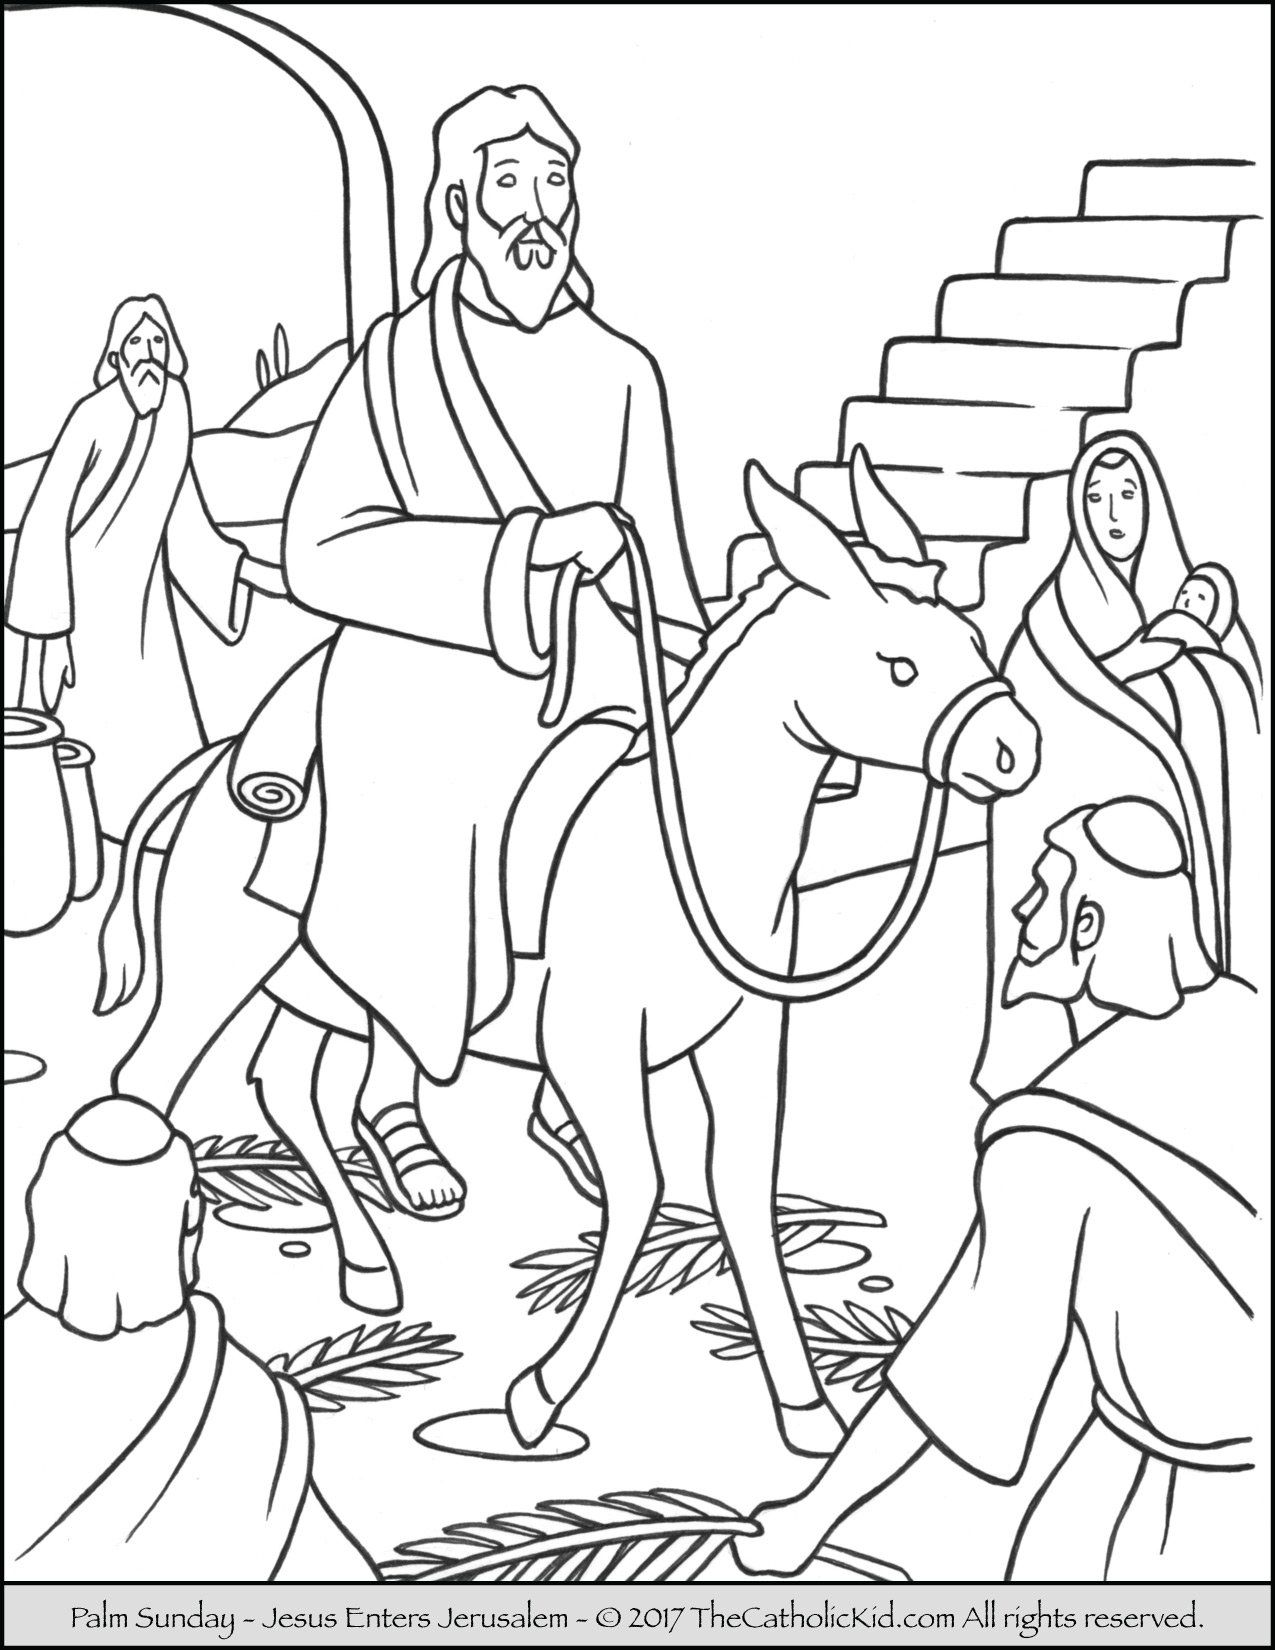 palm sunday coloring pages Palm Sunday Coloring Page   palm sunday coloring pages